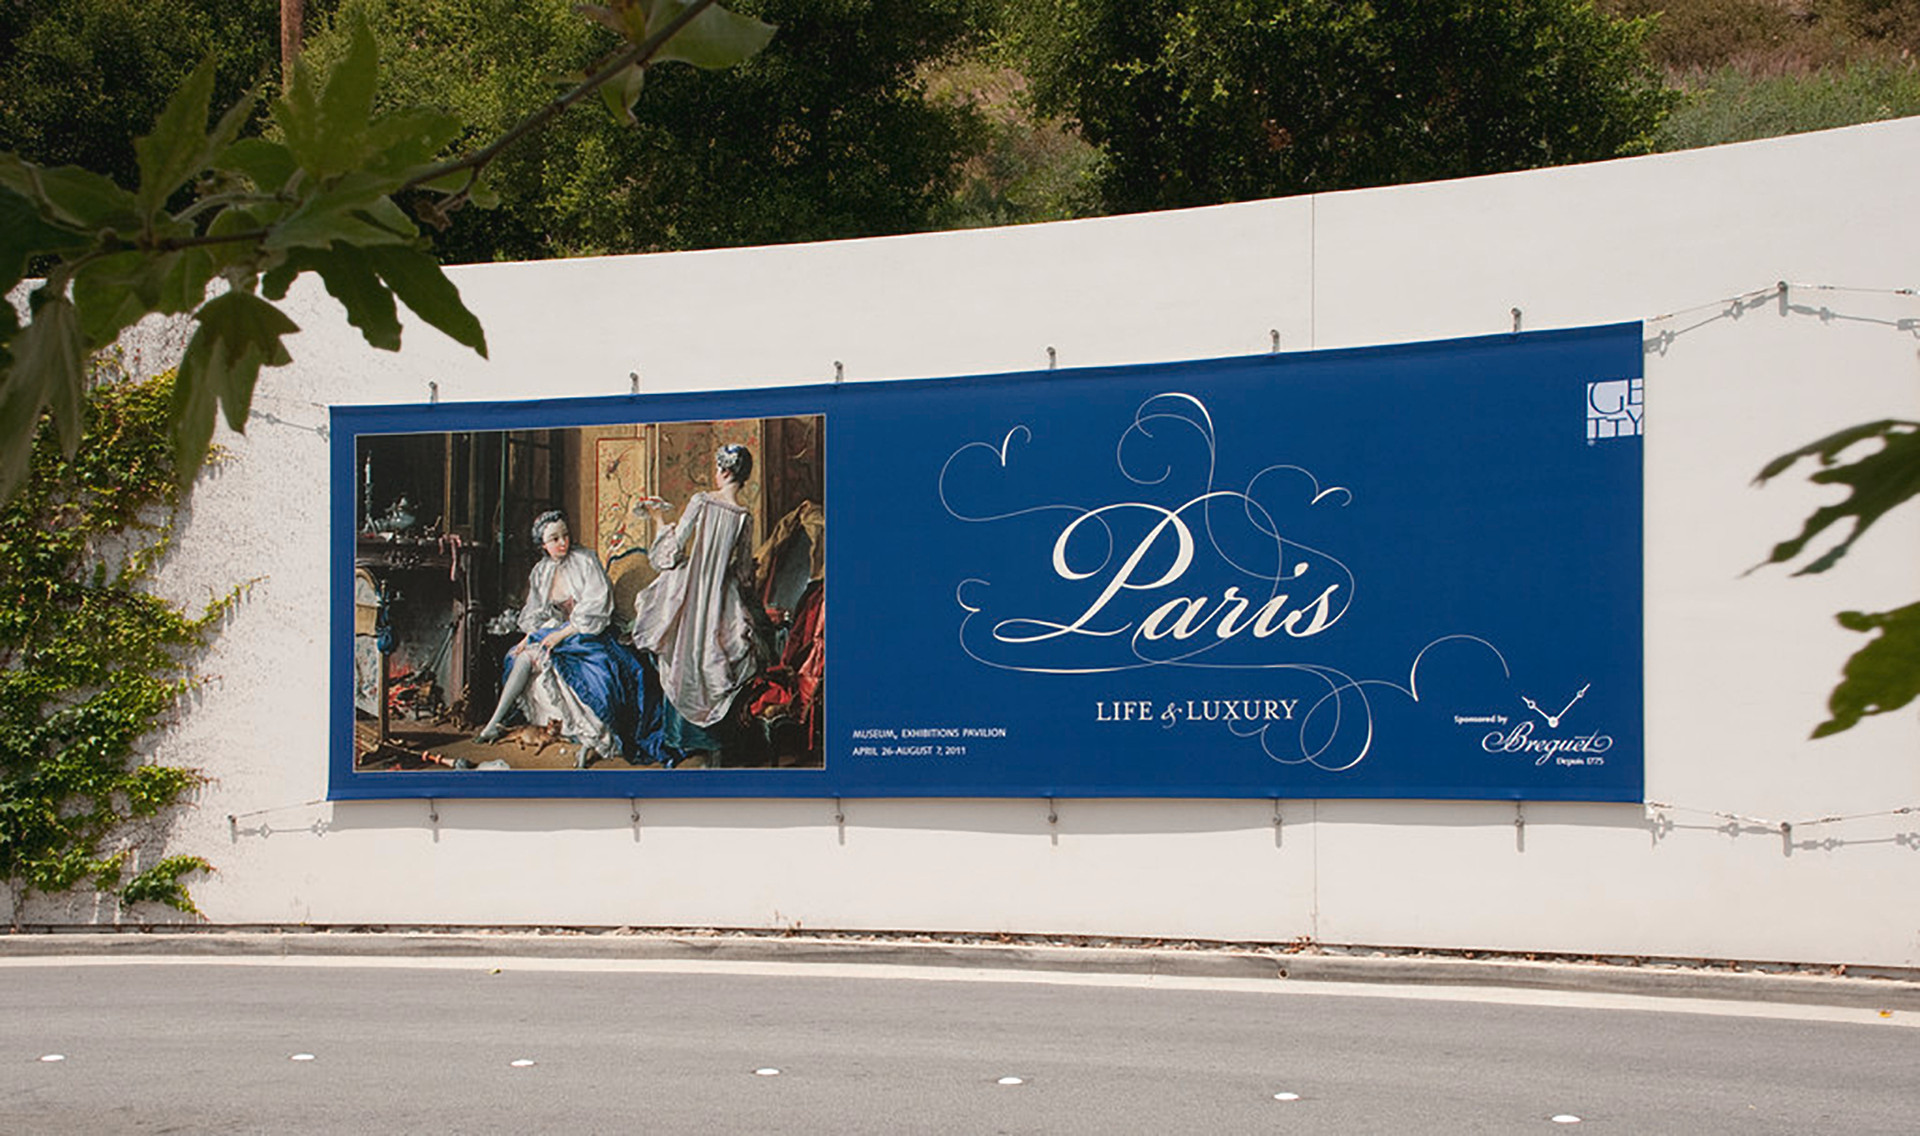 Promotional banner at the entrance to the Getty Center.